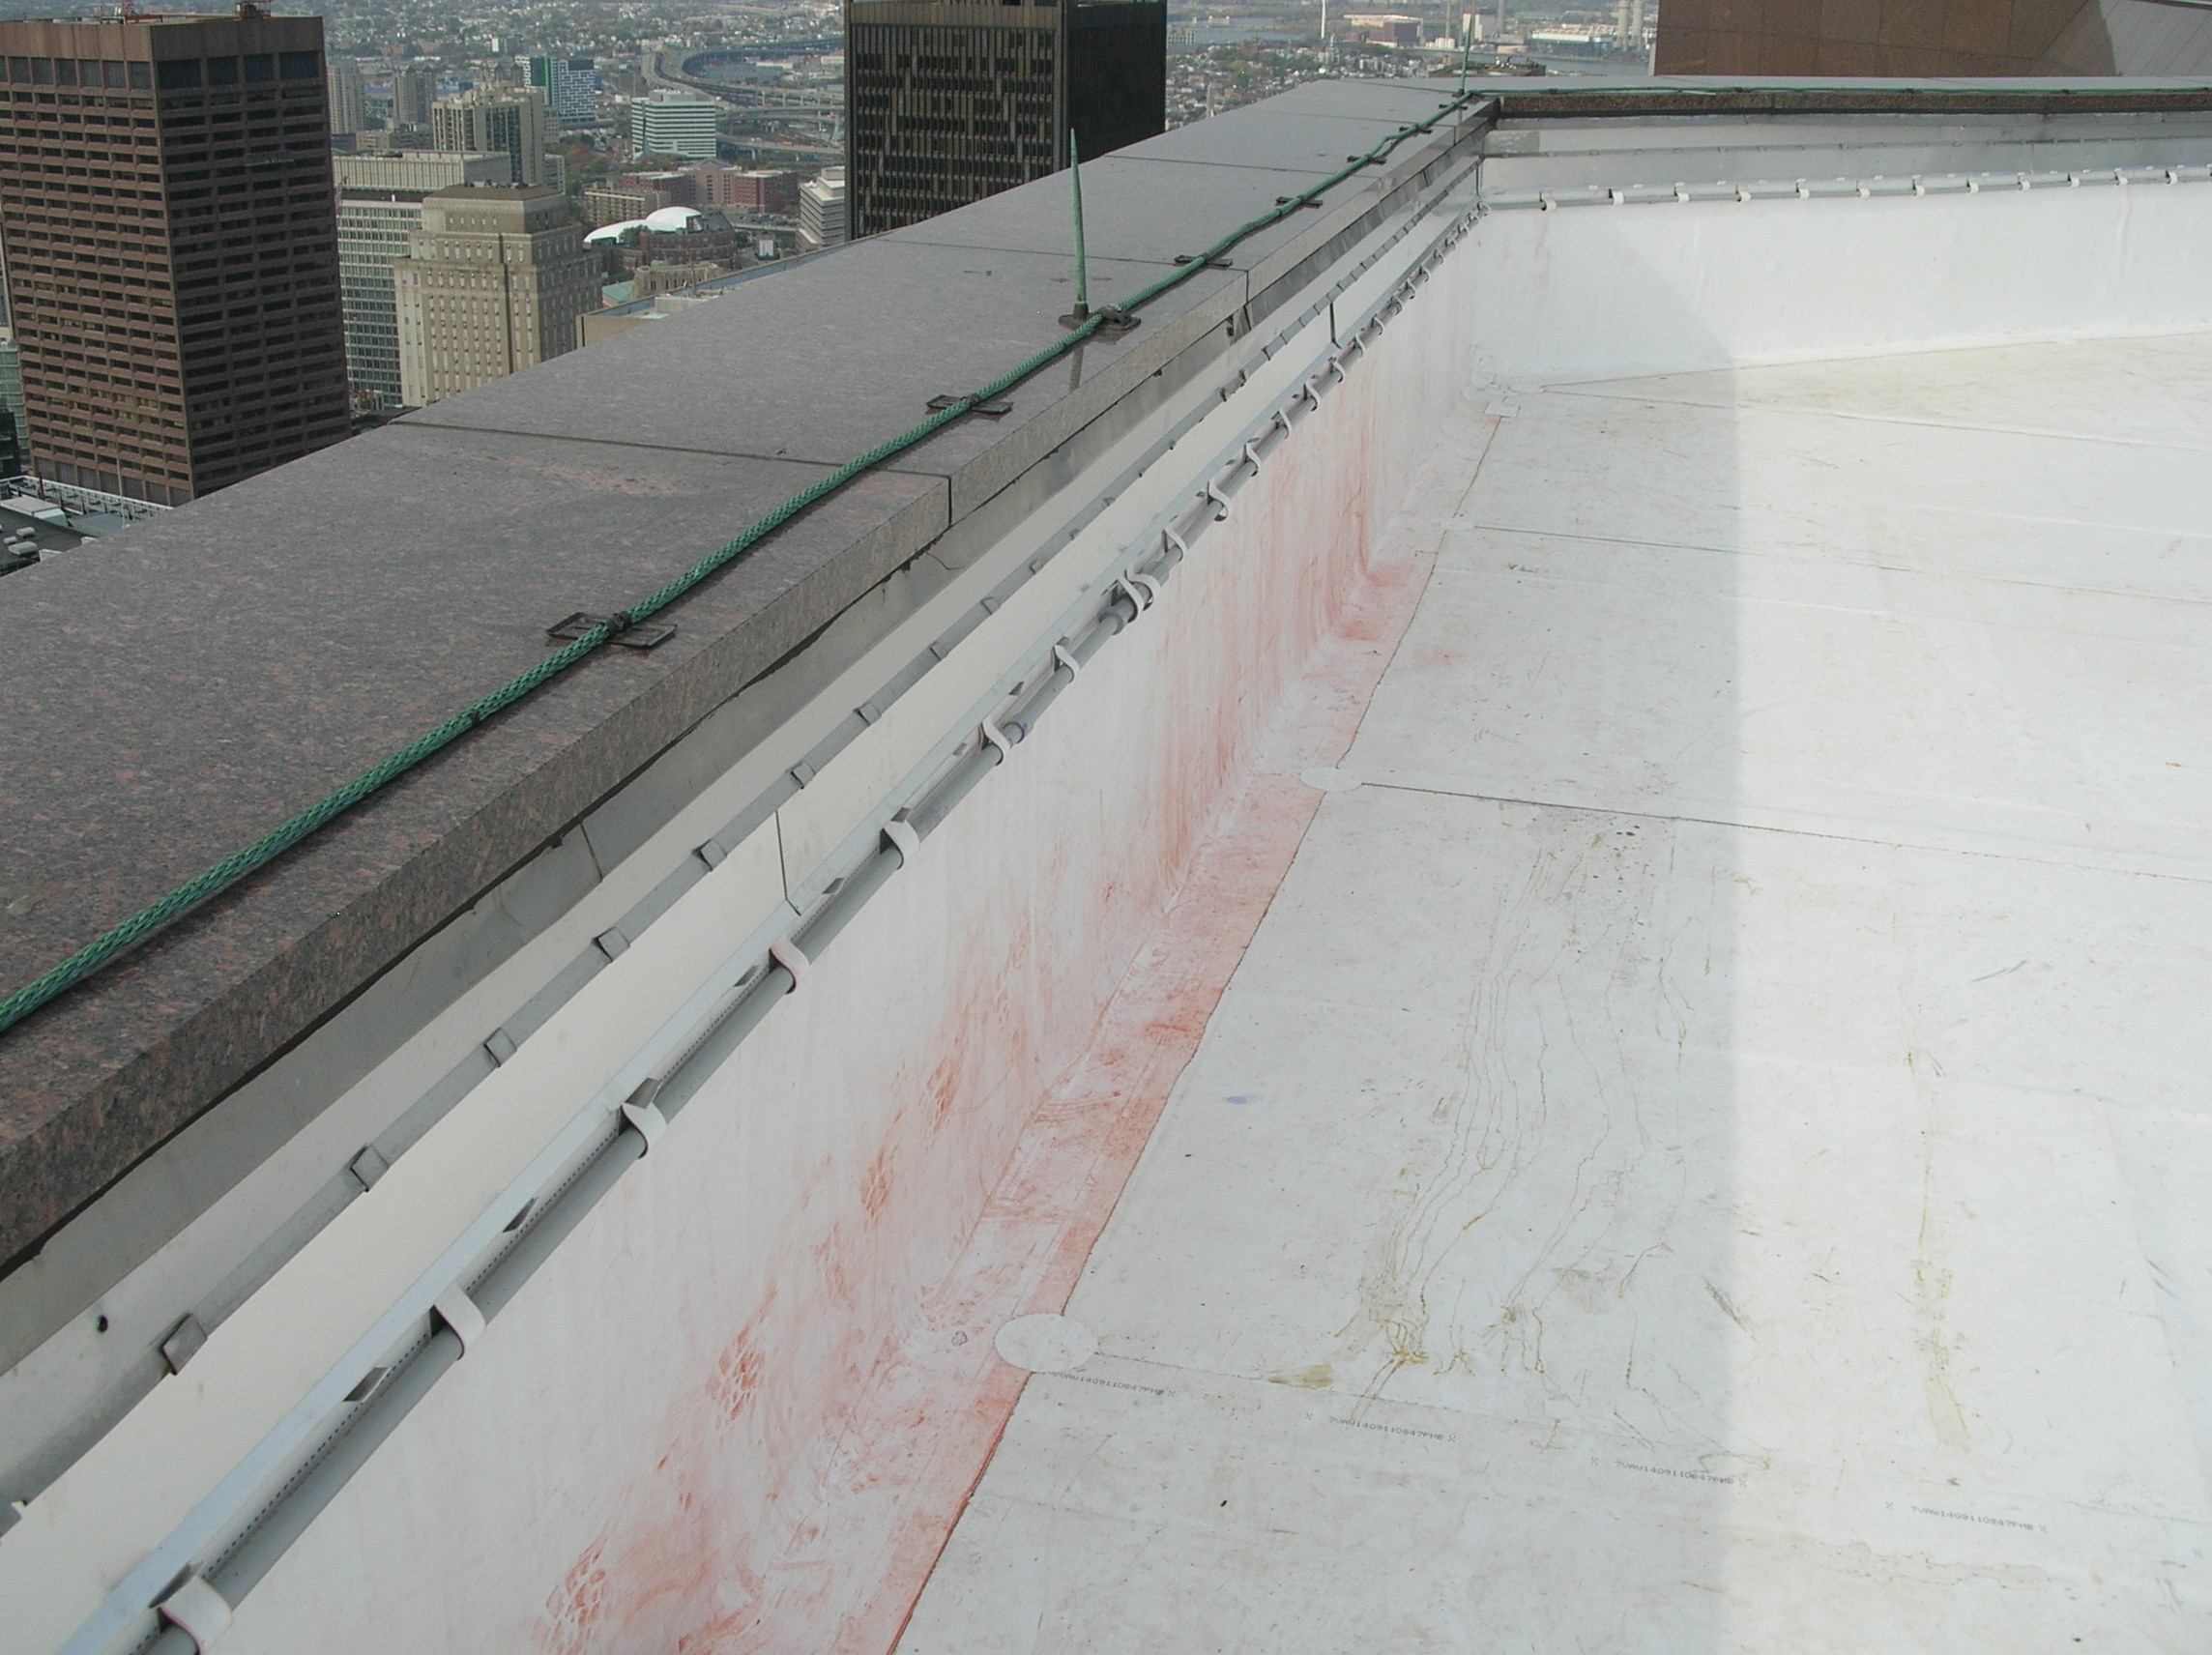 Natural stone (polished granite) coping with lightning protection system on a skyscraper roof parapet wall.